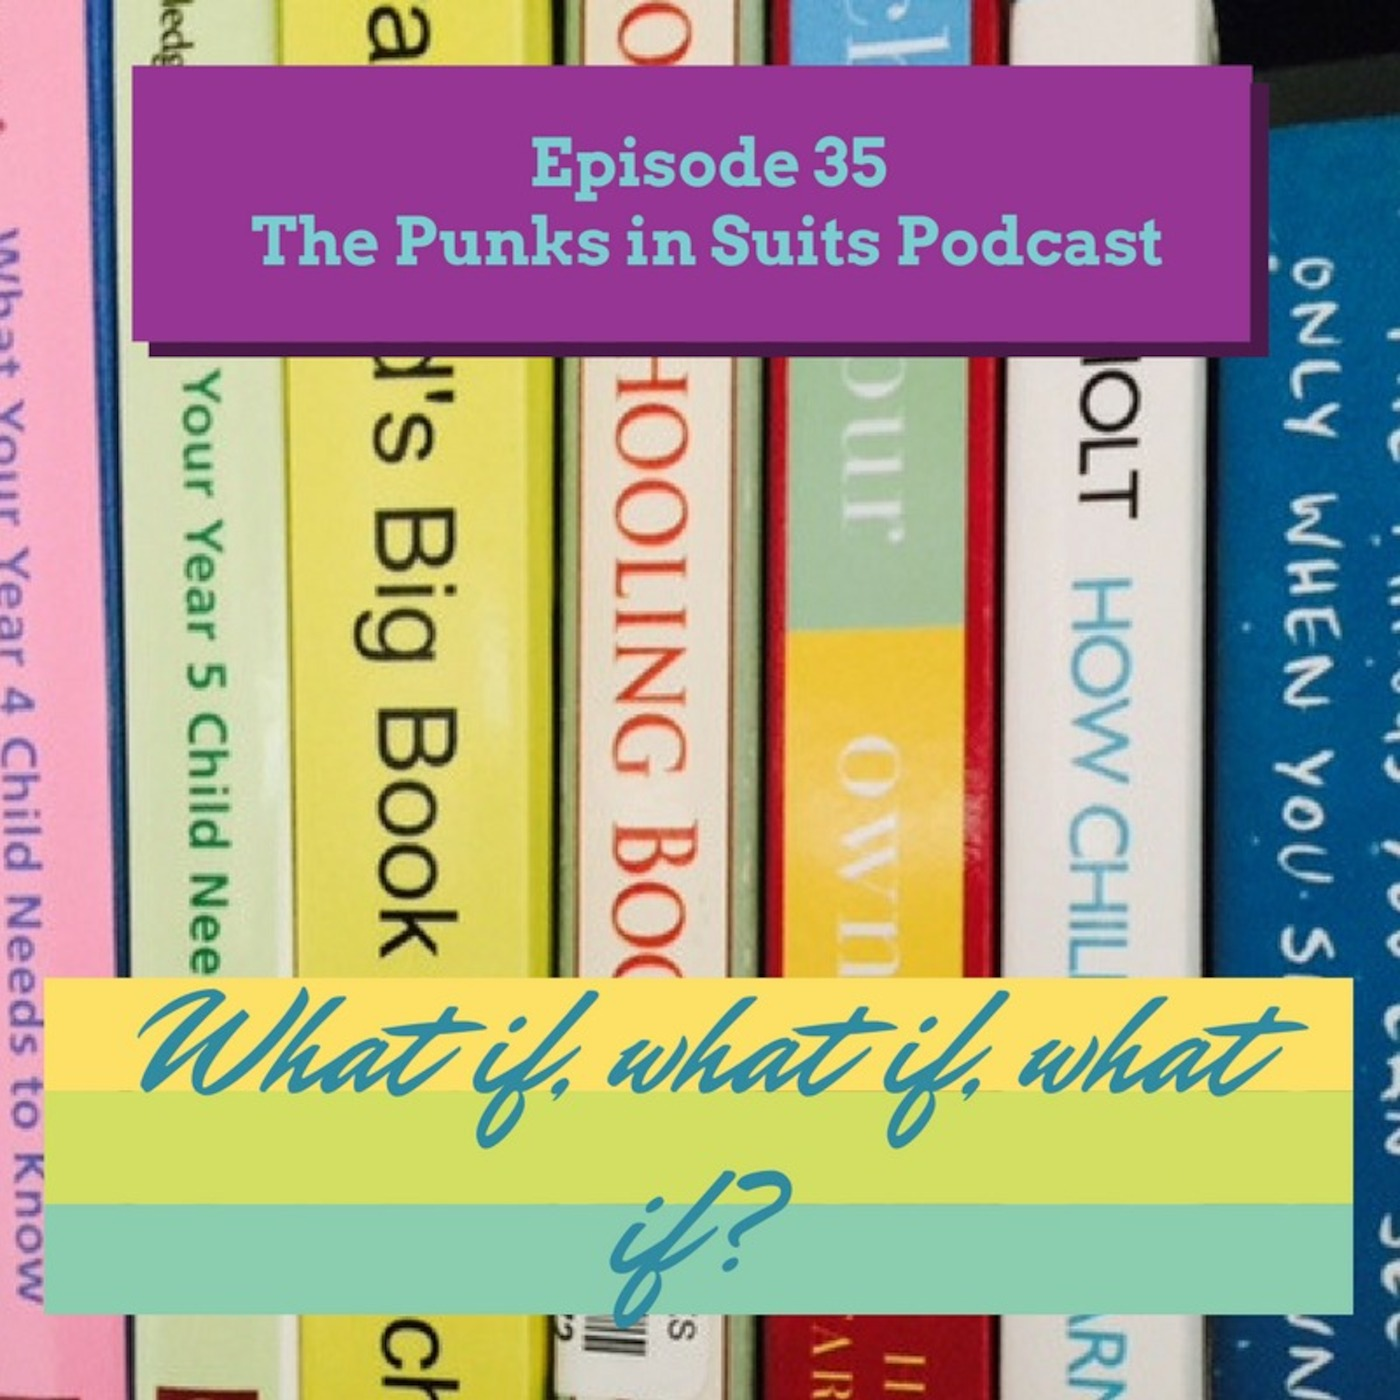 Episode 35 - What if, what if, what if?